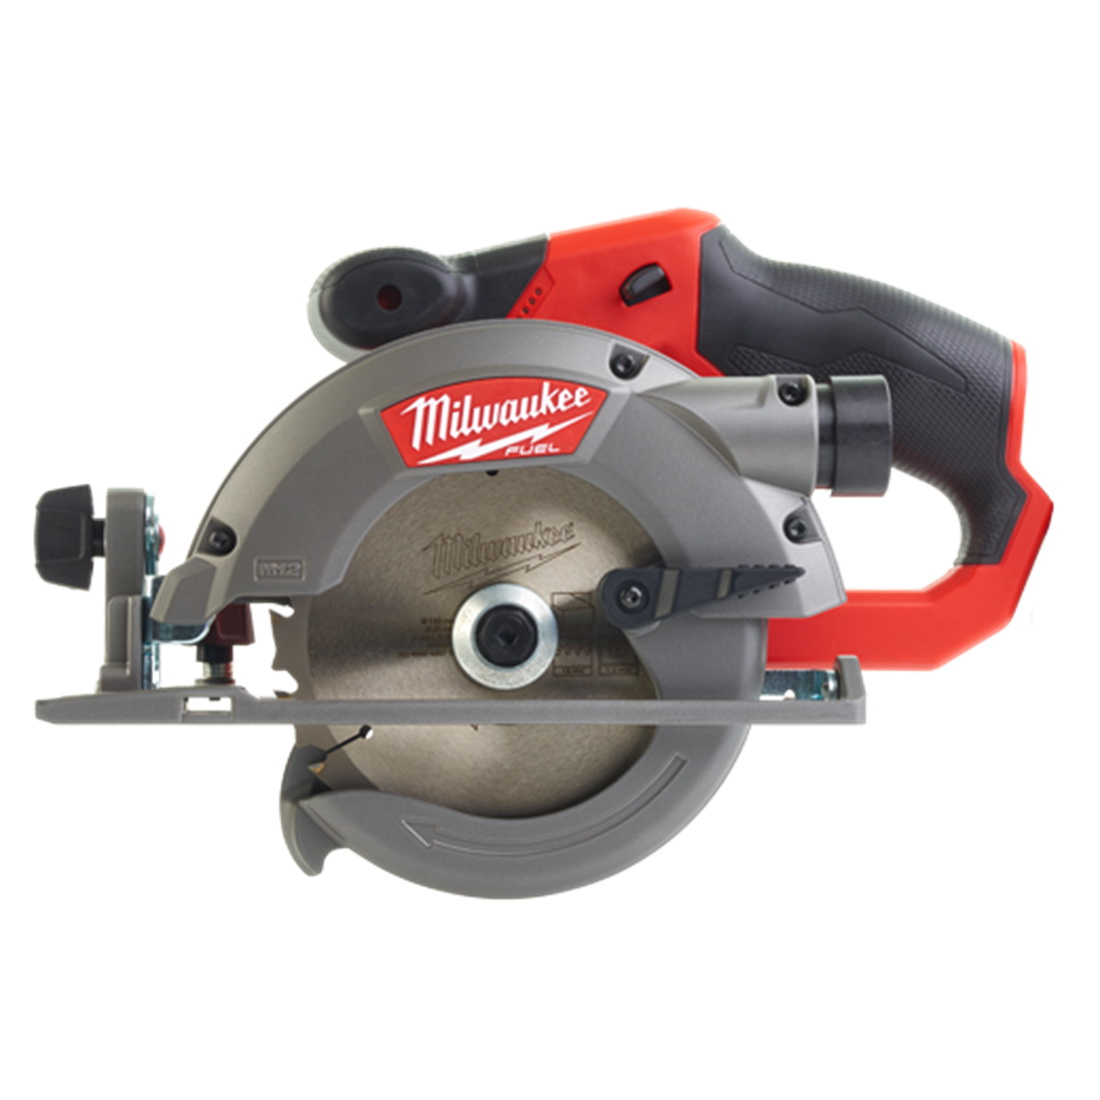 M12 FUEL Cordless Circular Saw 140mm (Tool Only)